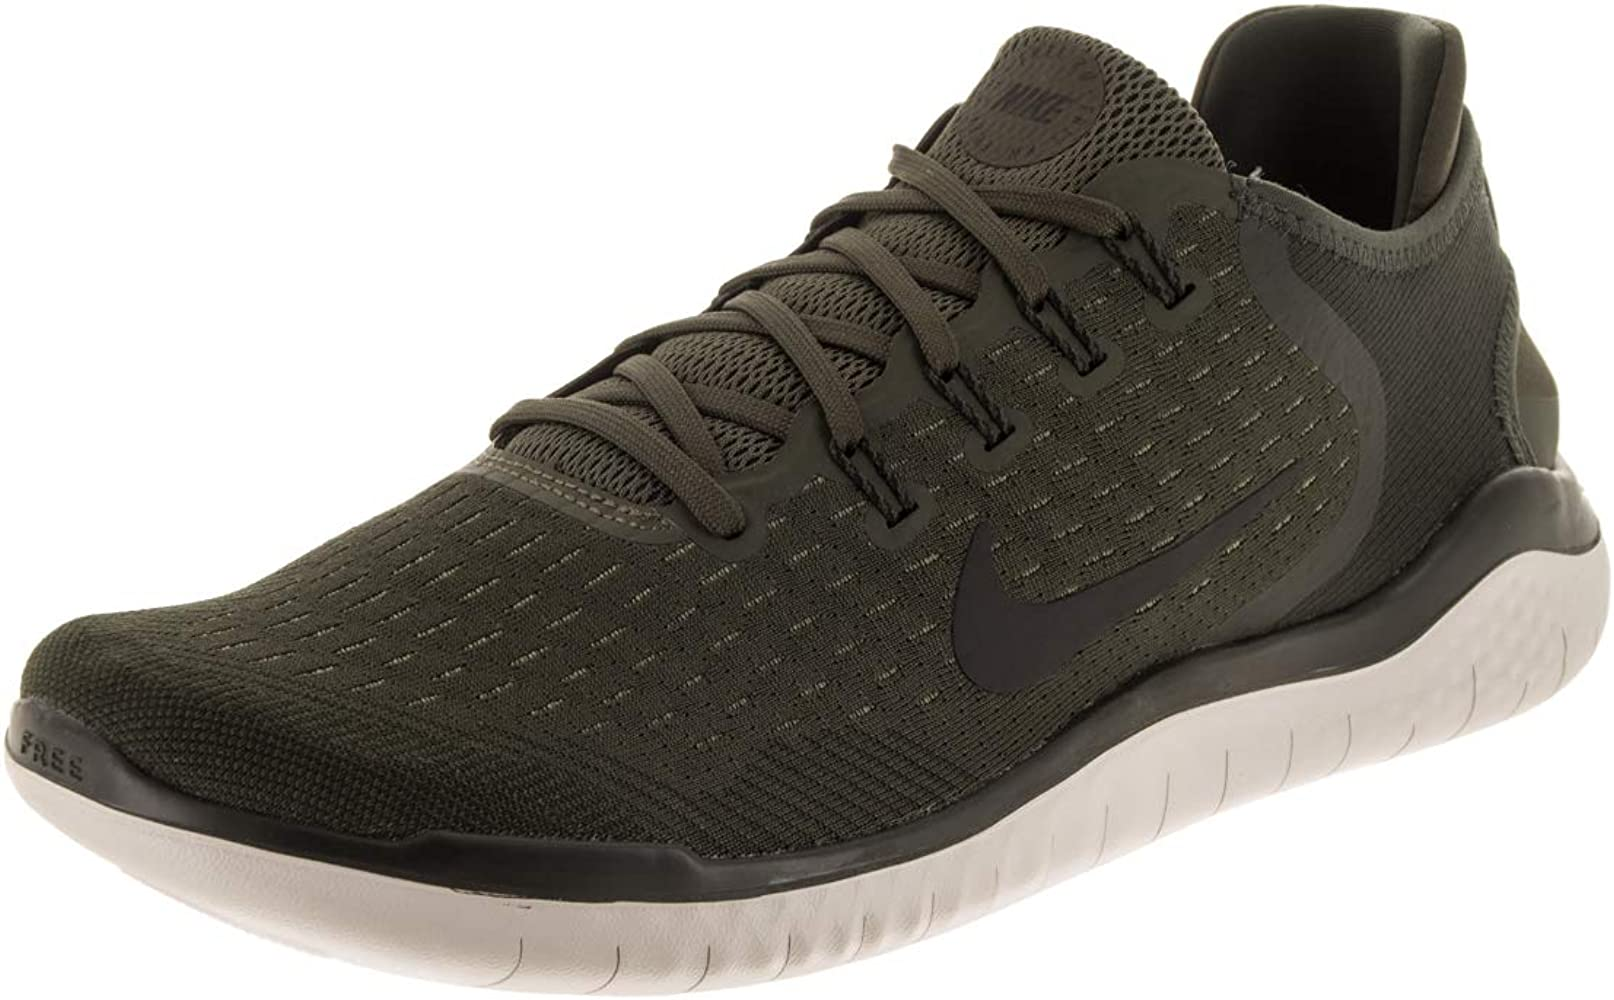 Nike Free RN 2018 Hombre Running Trainers 942836 Sneakers Zapatos ...